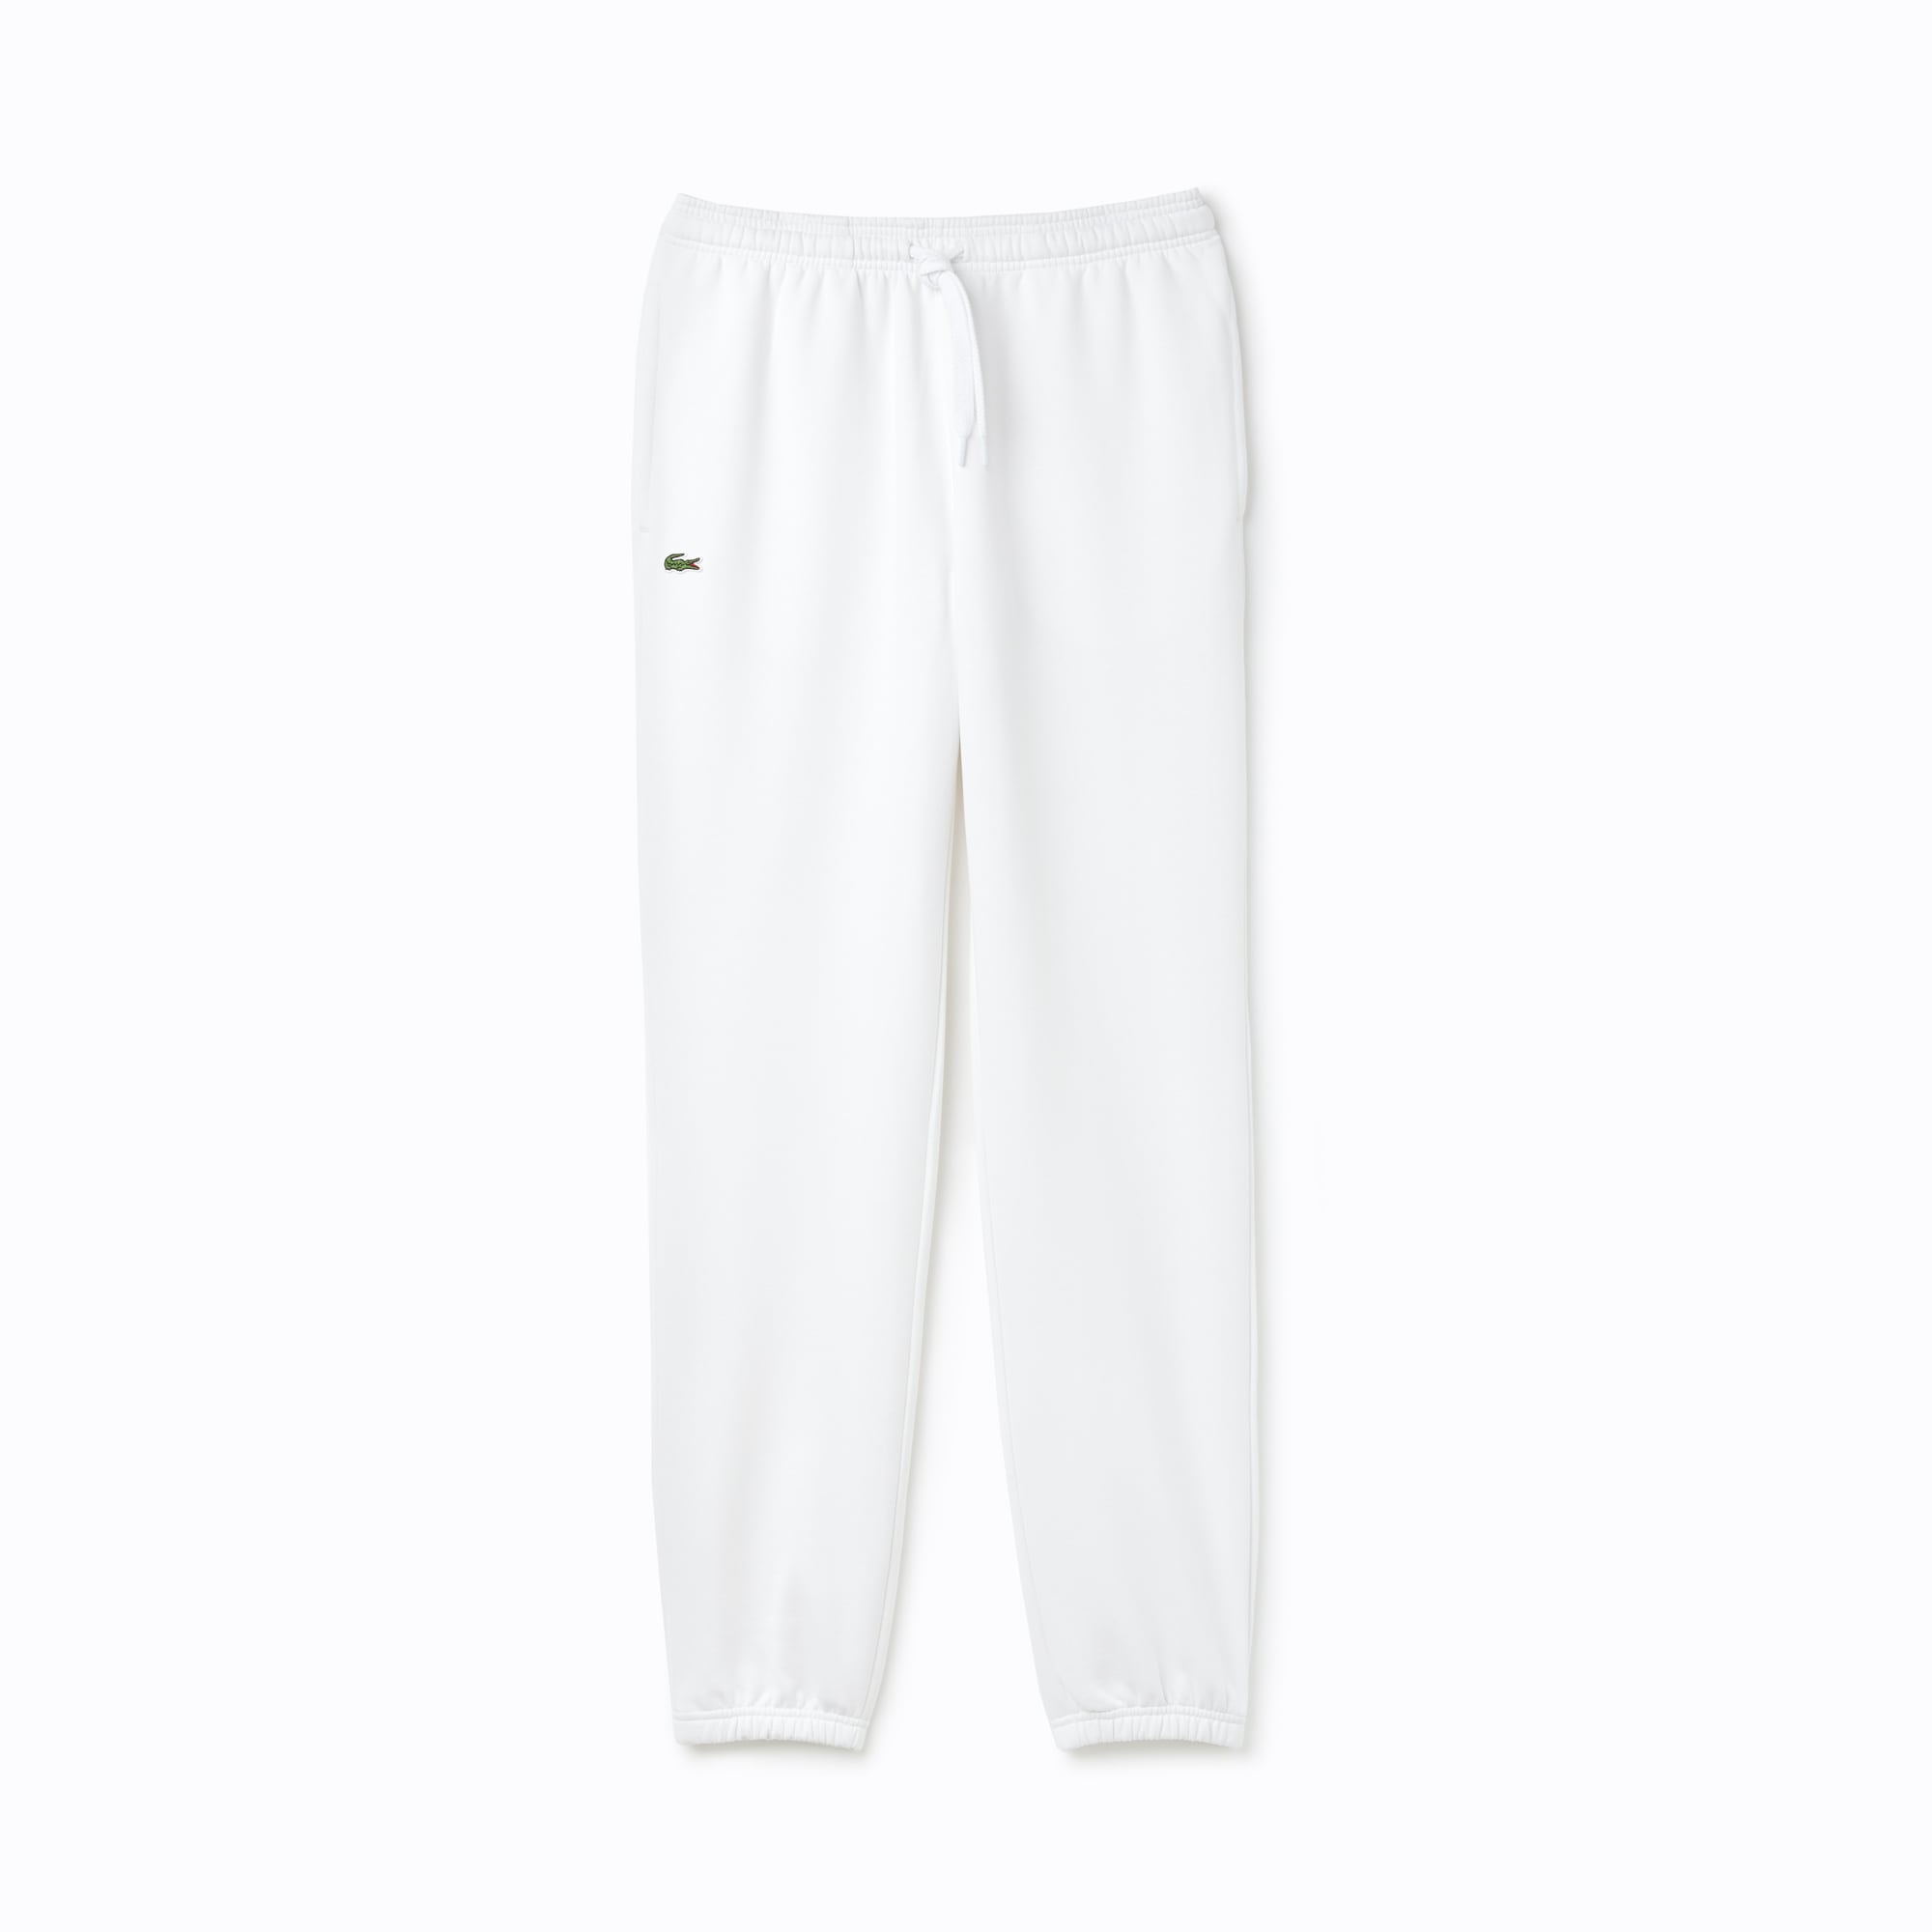 라코스테 Lacoste Men's SPORT Fleece Track Pants,White - 001